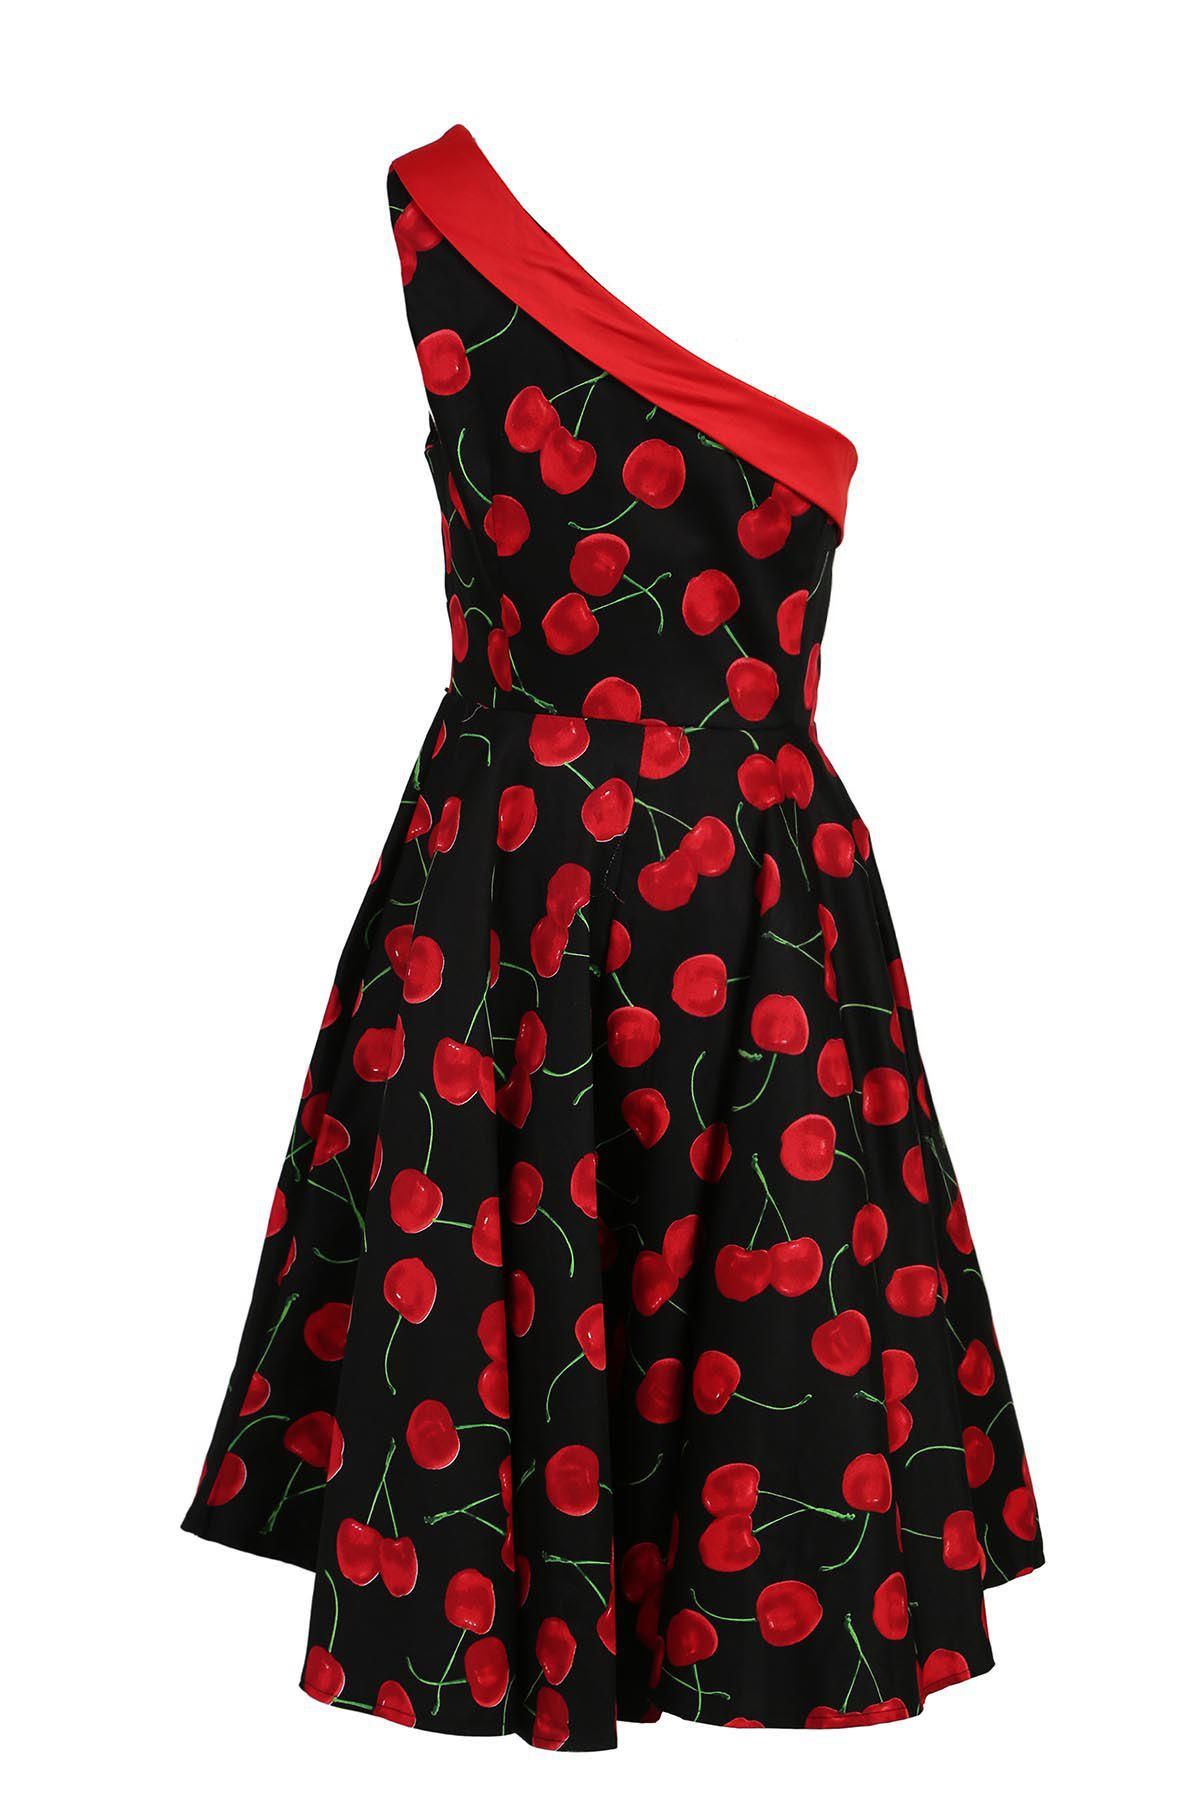 Vintage One-Shoulder Sleeveless Cherry Printed Women's Flare Dress